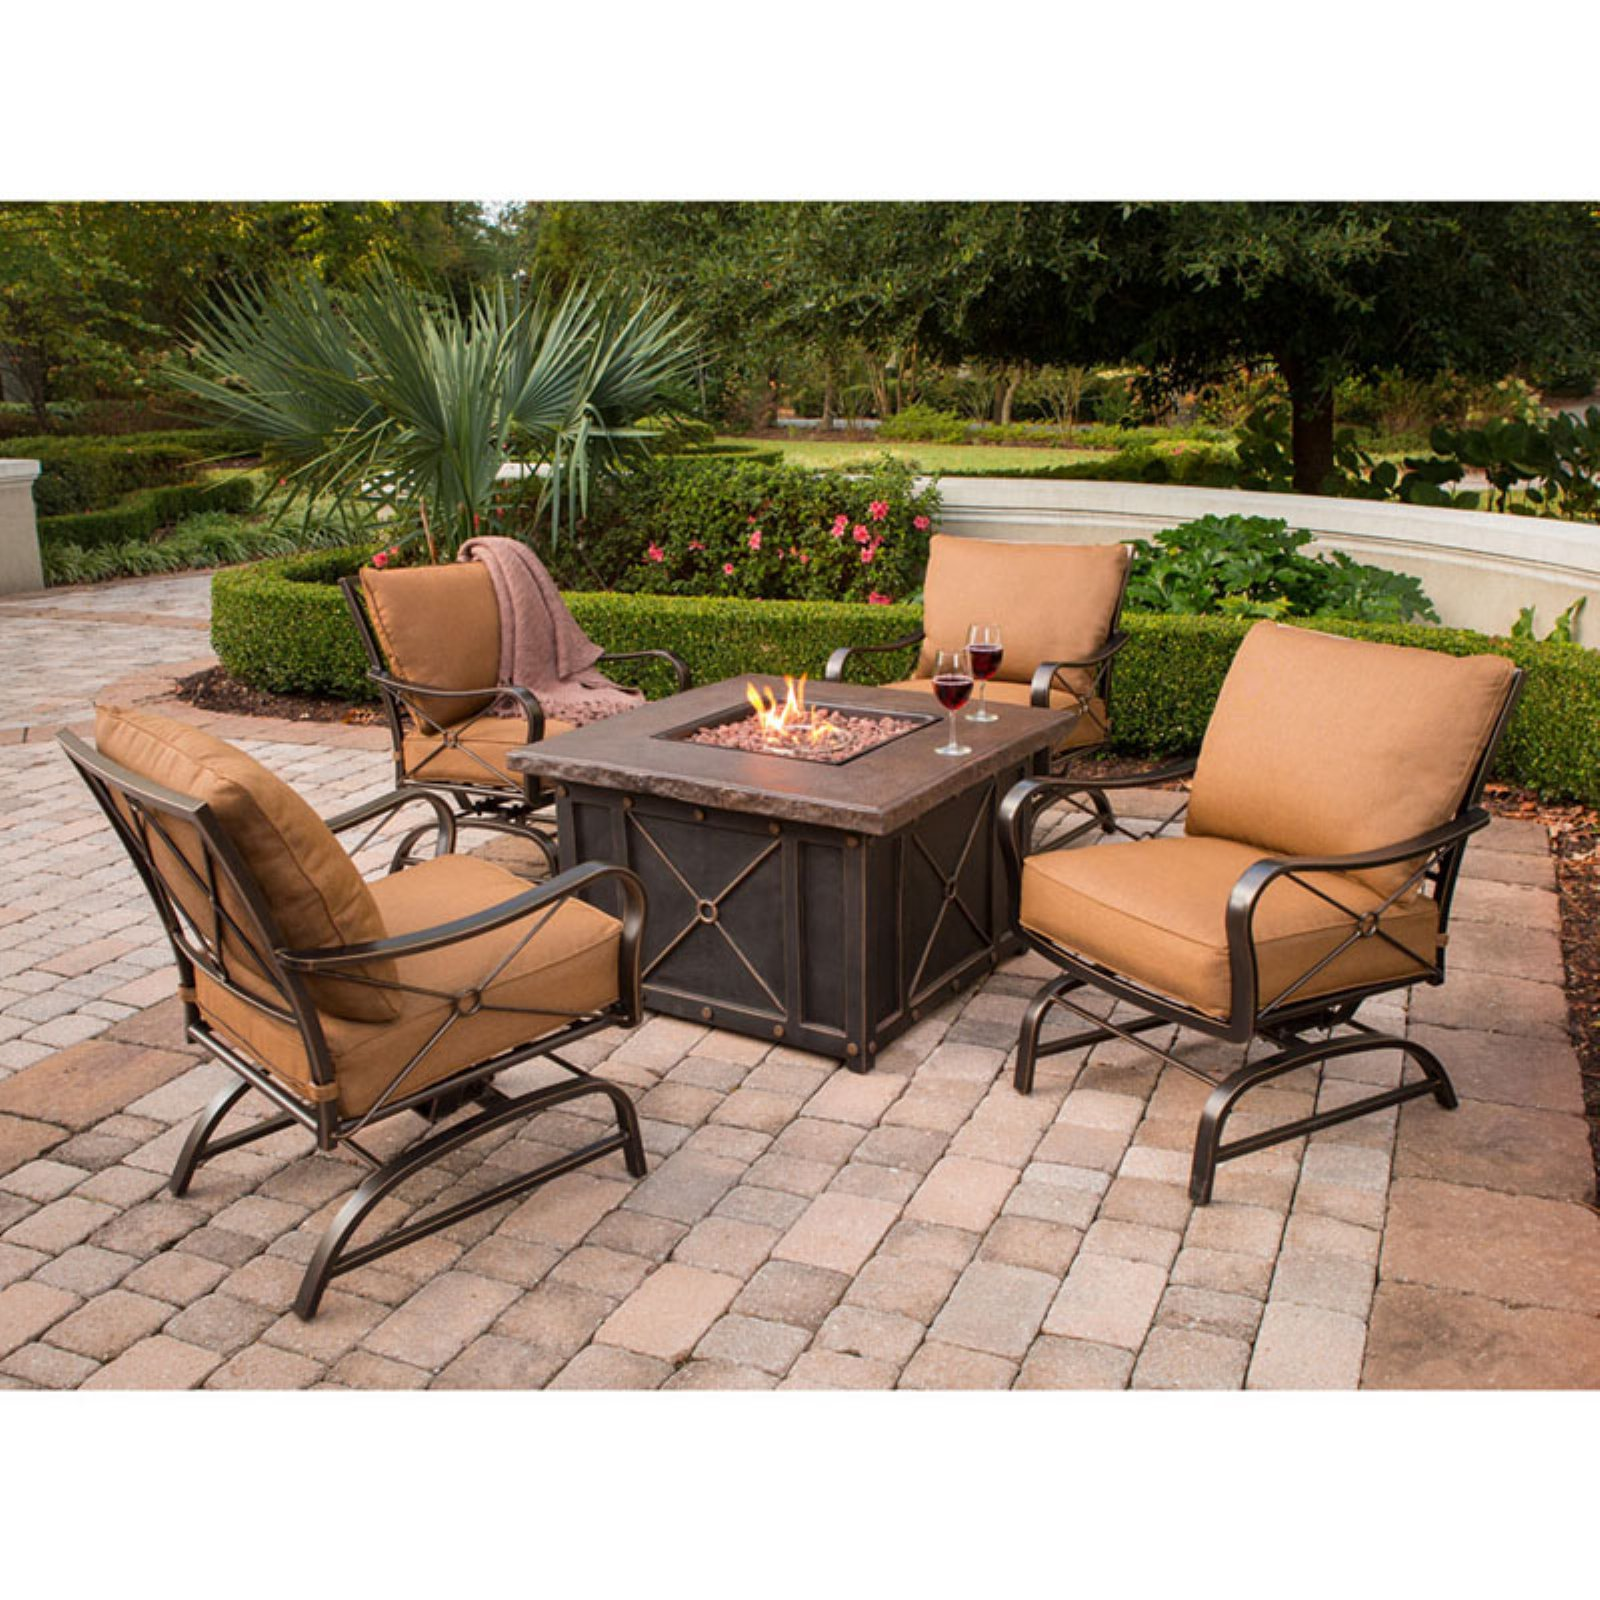 Summer Nights 5-Piece Fire Pit Lounge Set